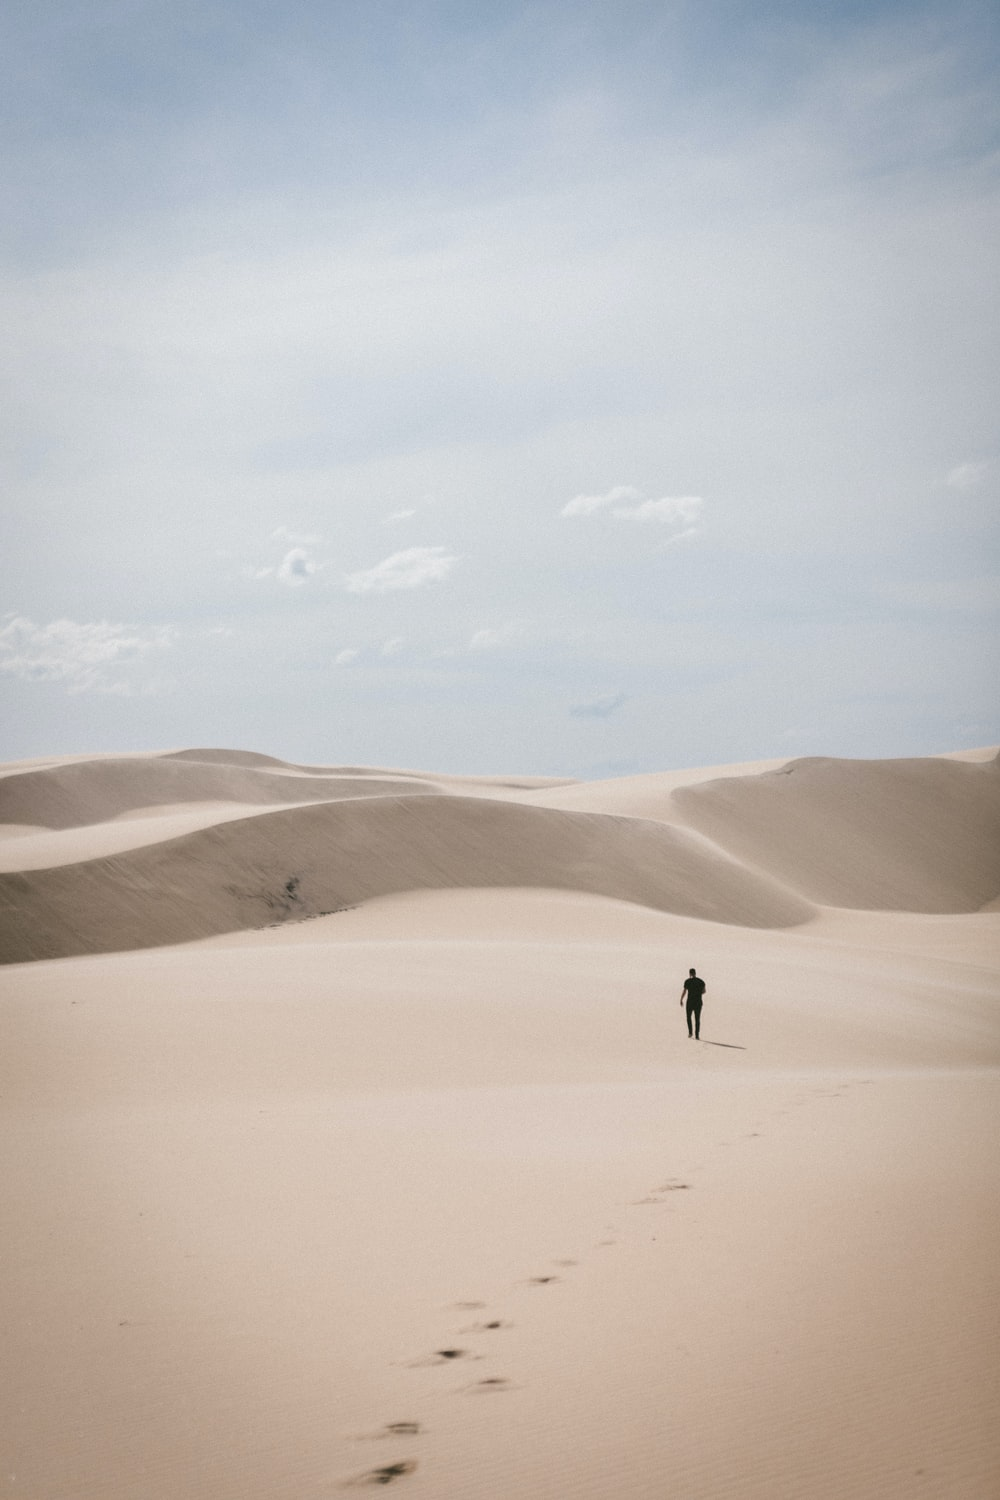 person waling on desert